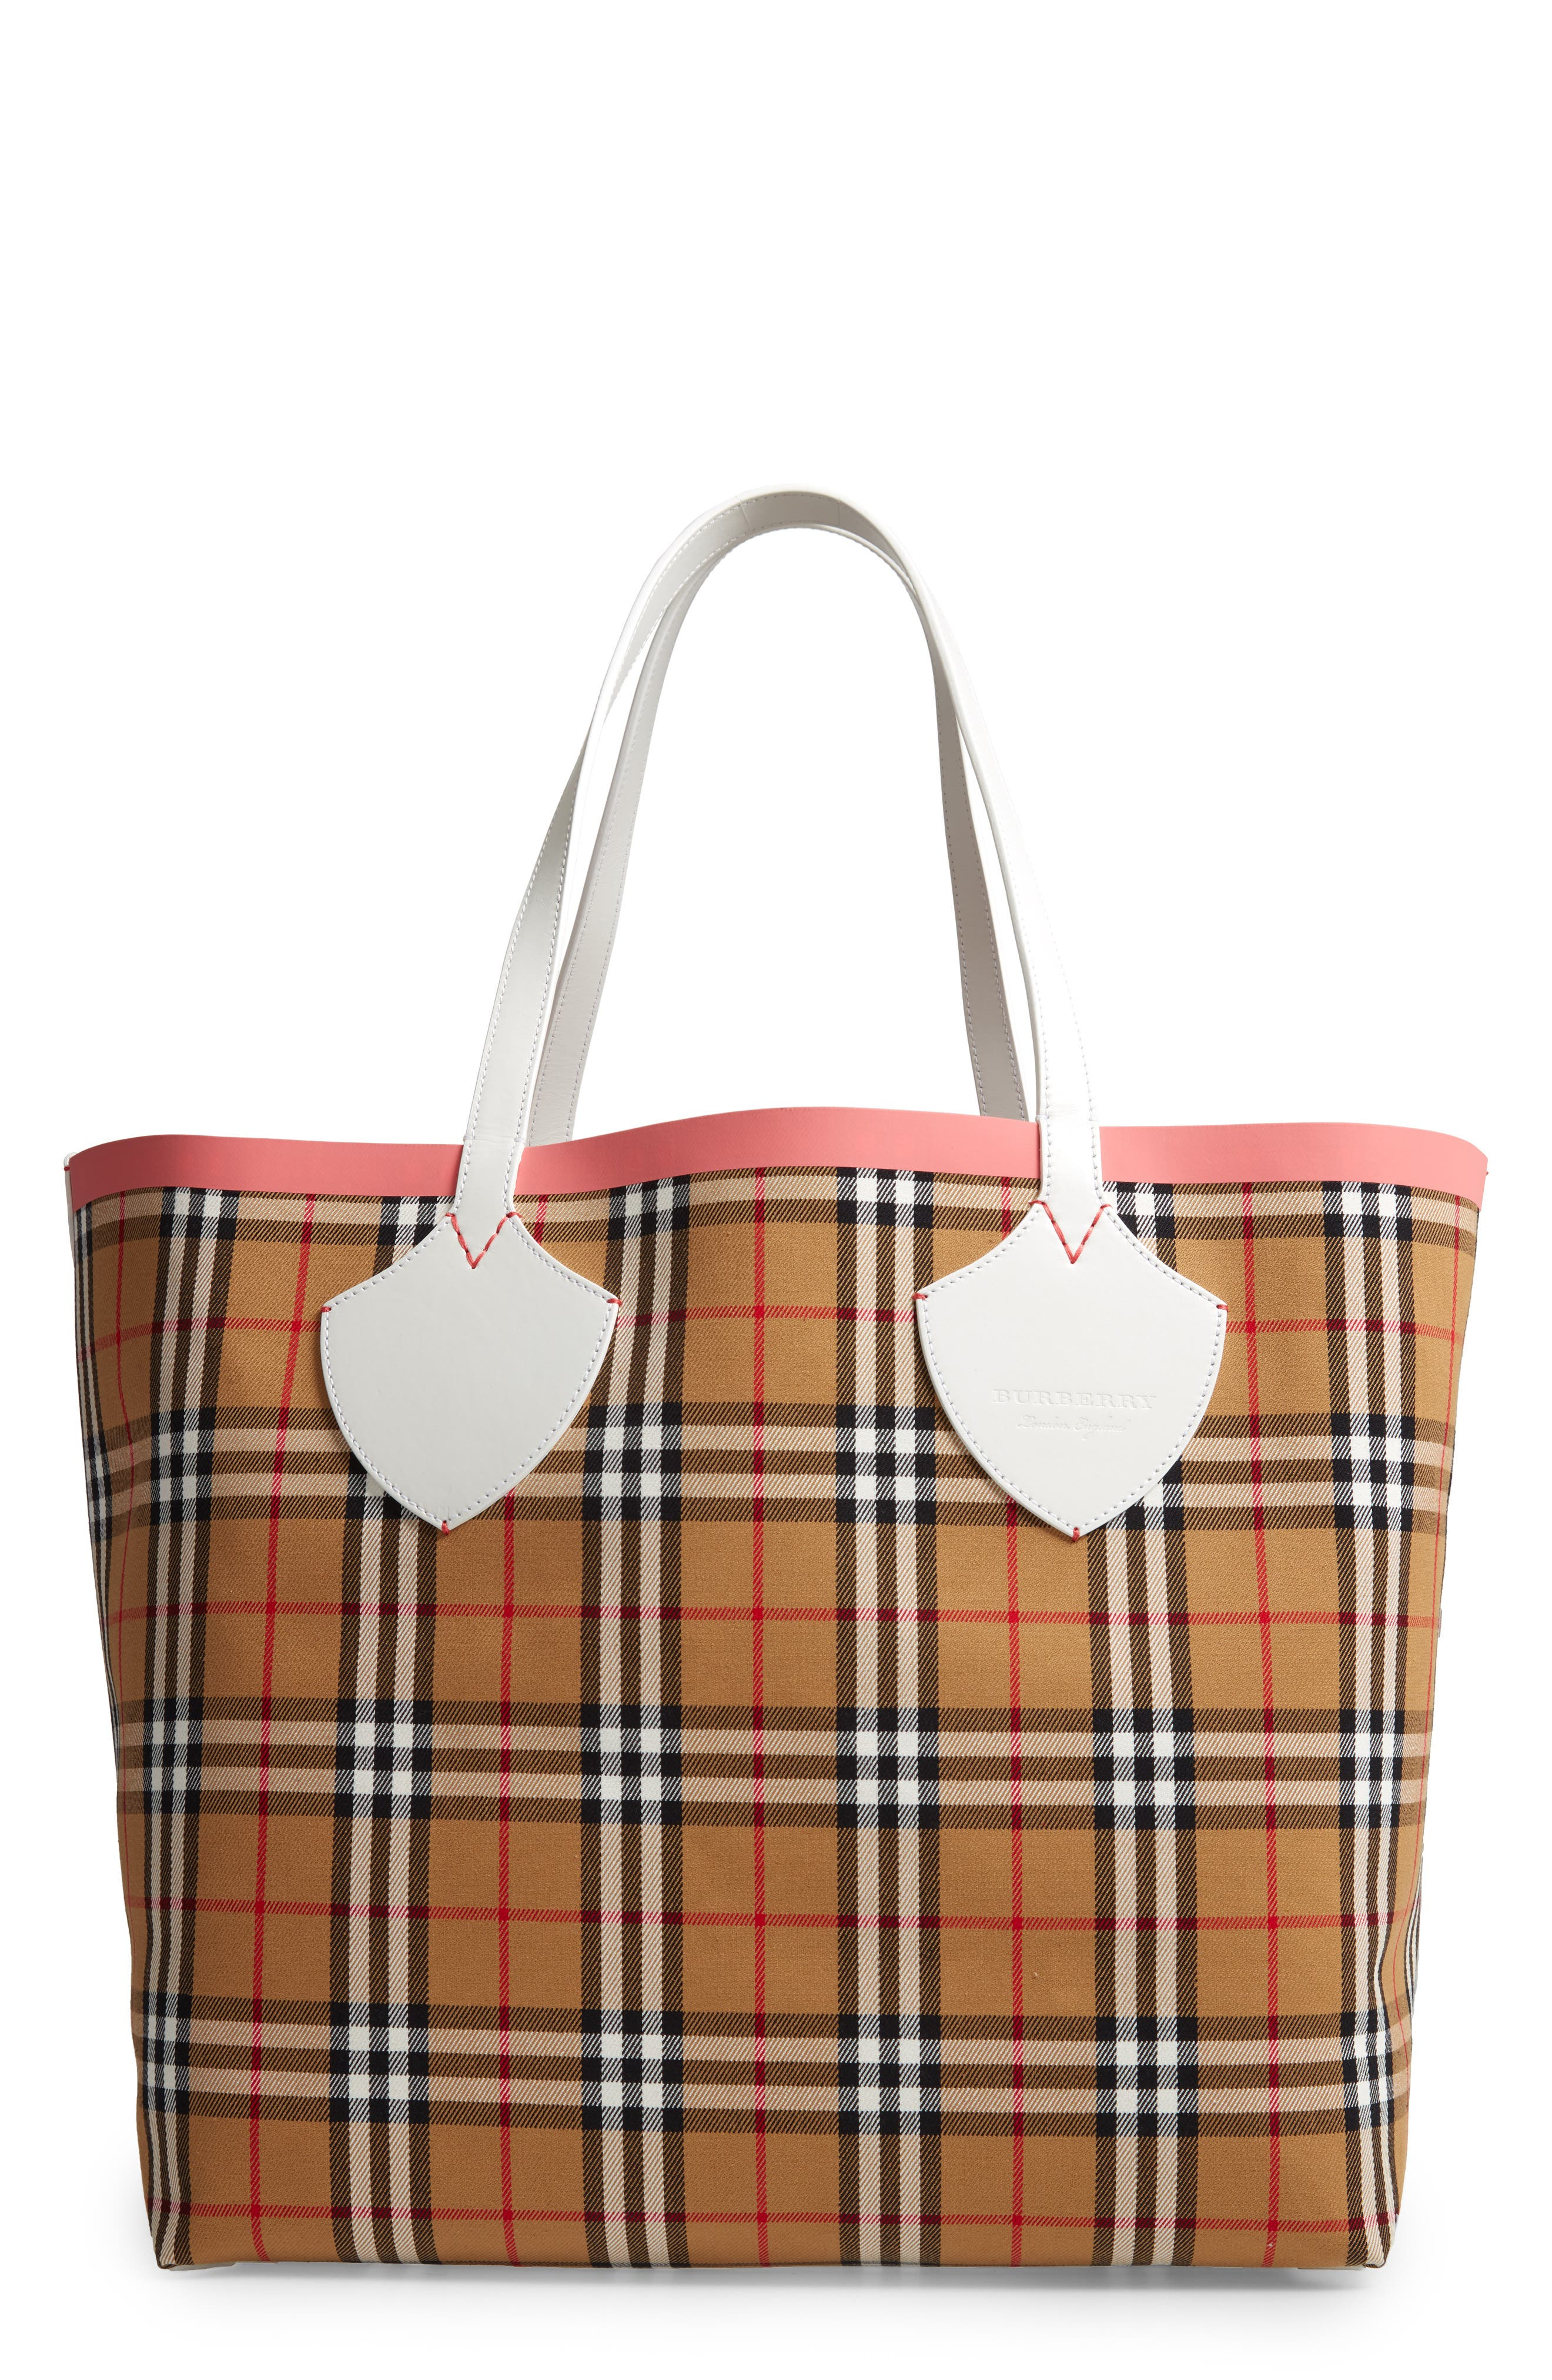 Giant Check Reversible Tote,                             Main thumbnail 1, color,                             BEIGE/ PINK/ CHALK WHITE